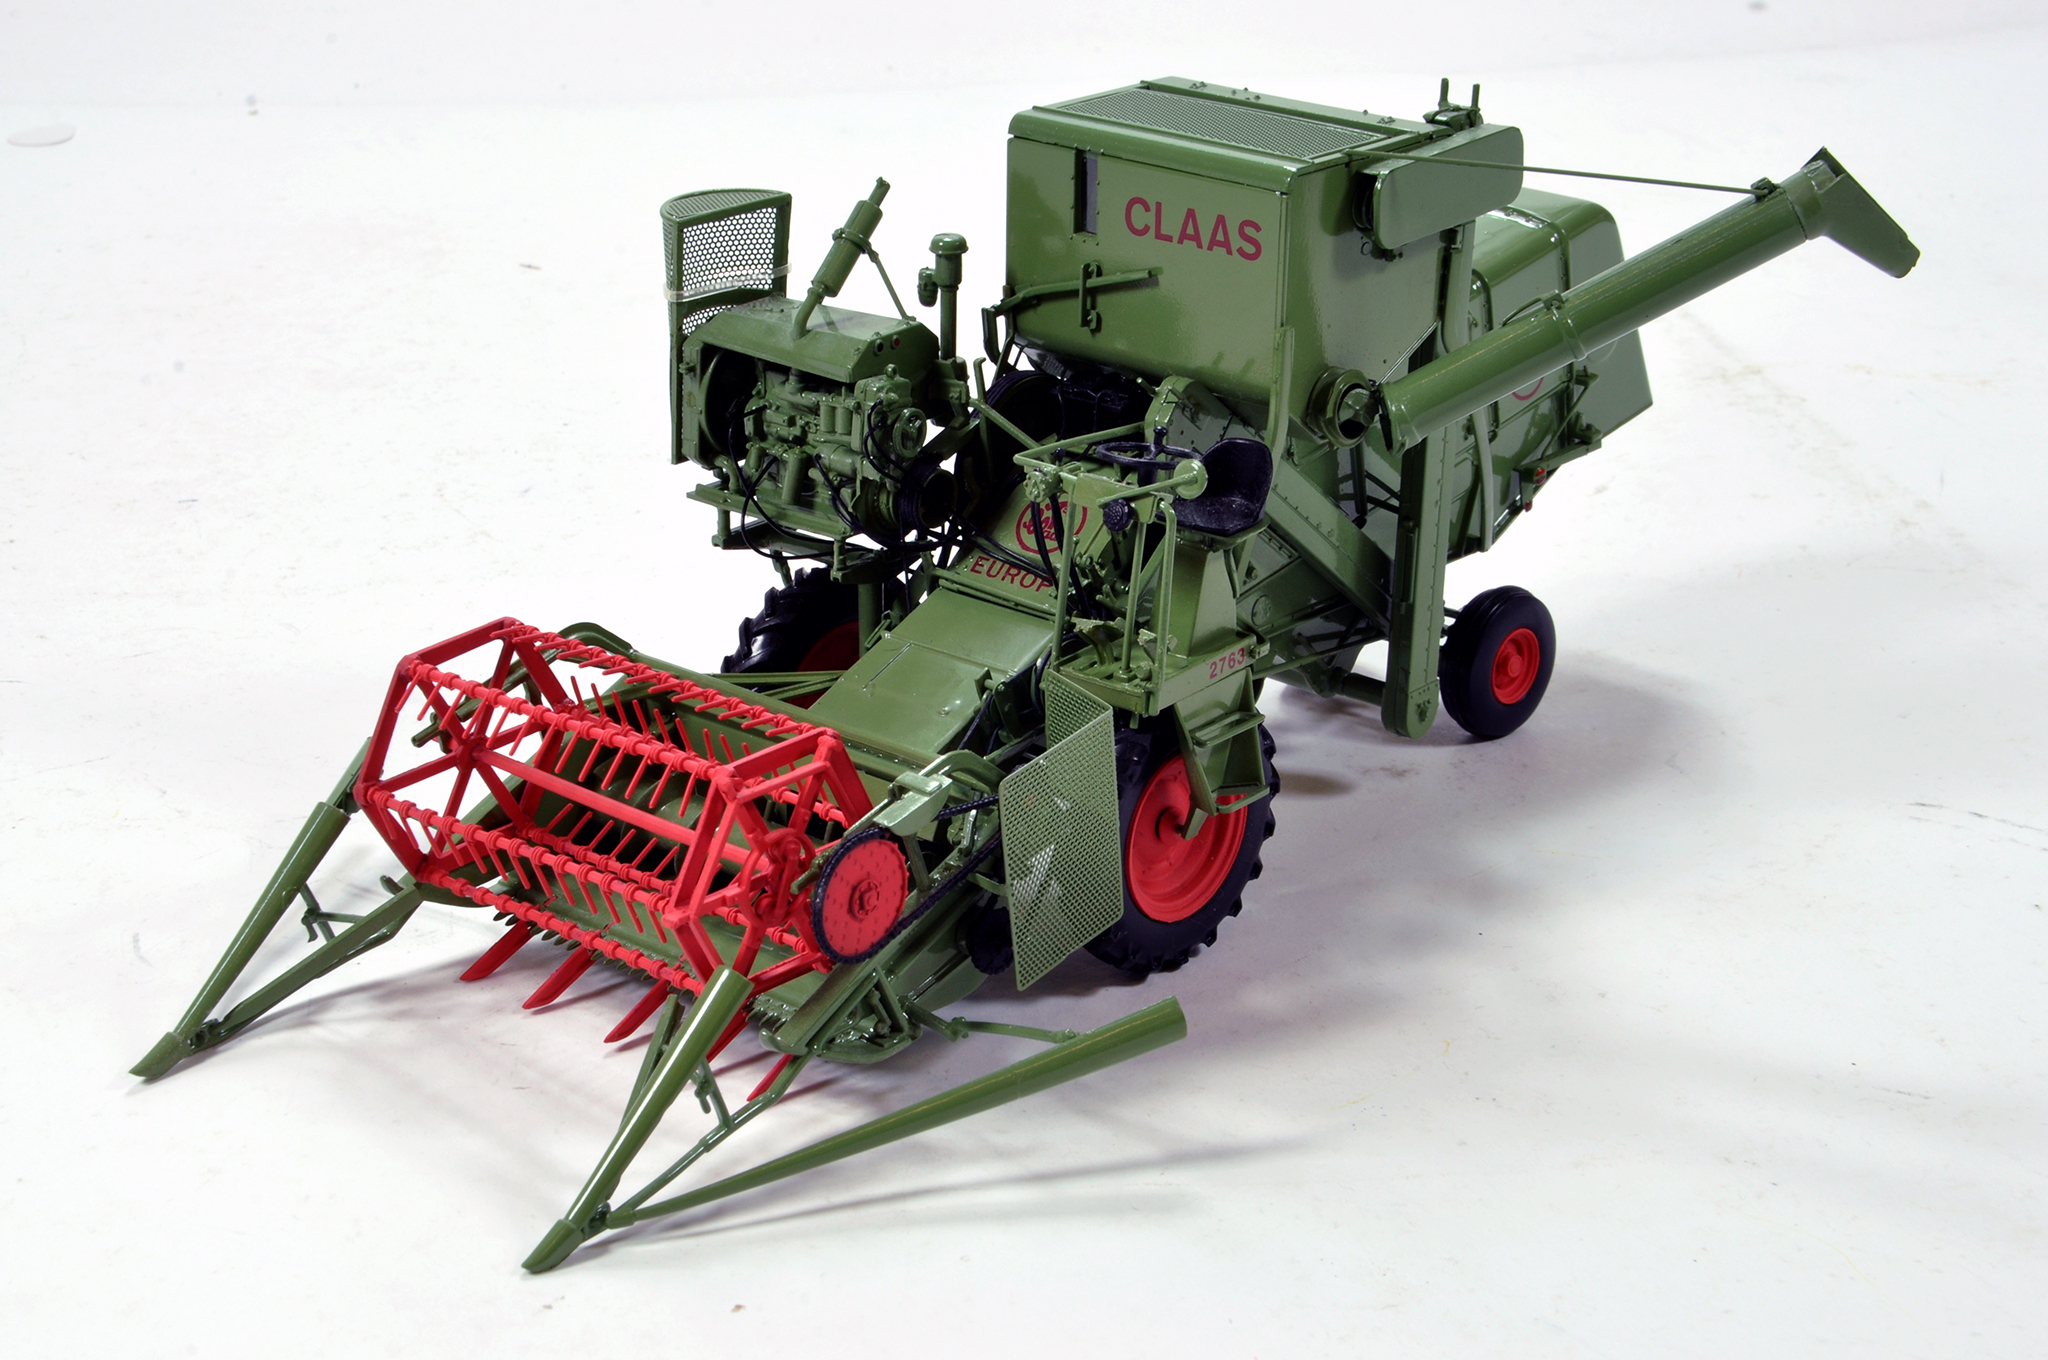 Lot 780 - Universal Hobbies 1/32 Farm Issue comprising Claas Europa Combine (green). Generally E to NM.